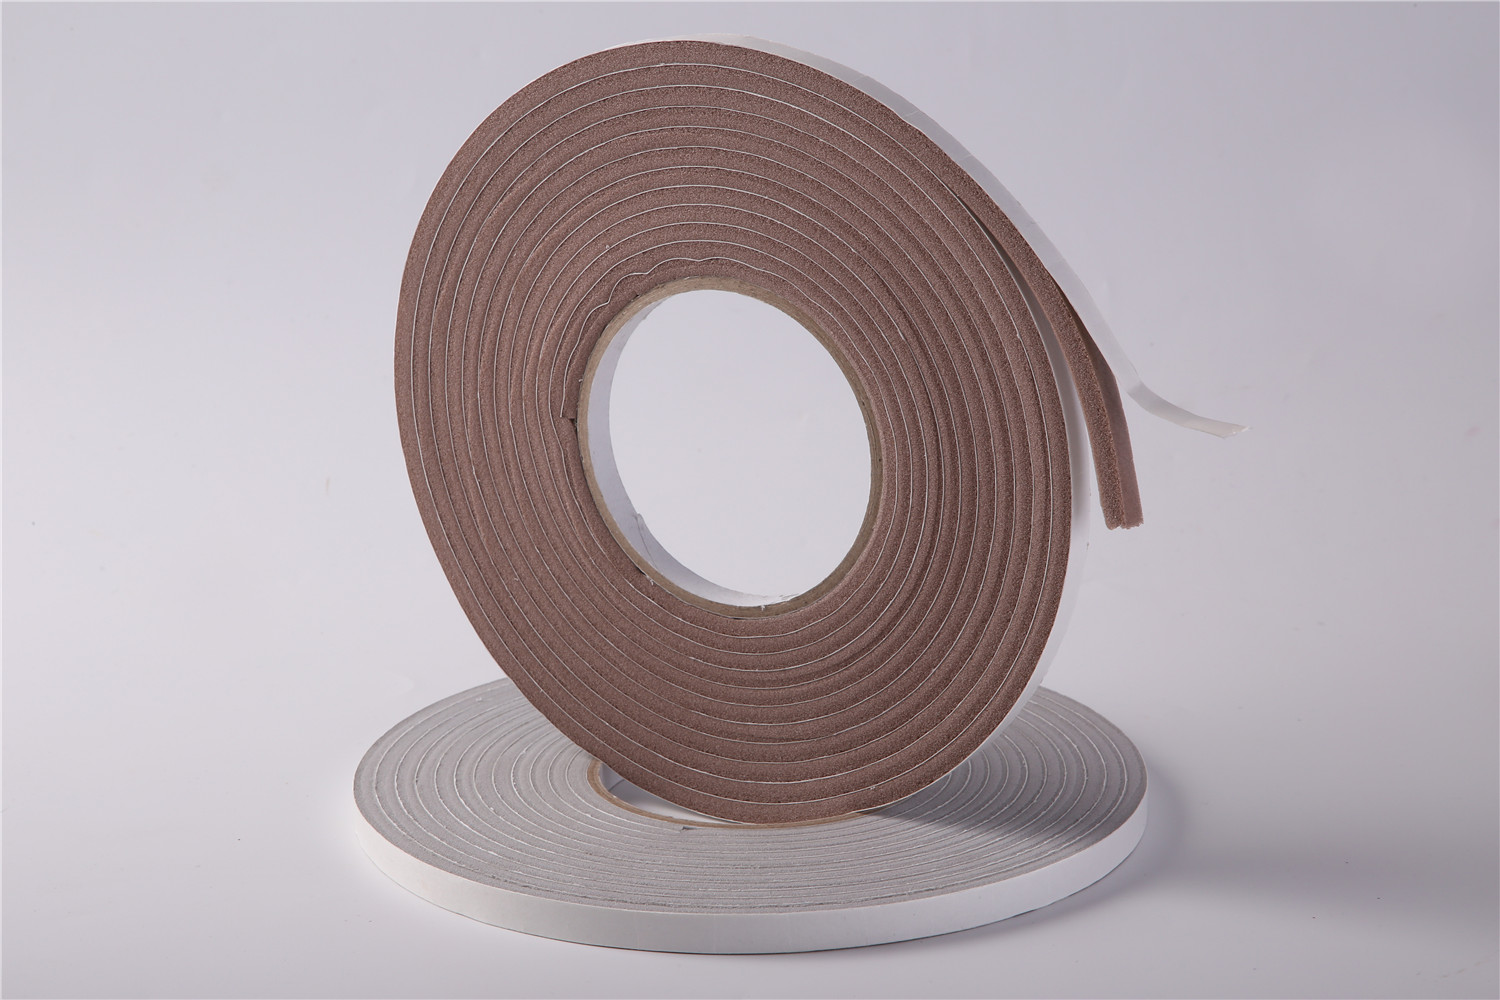 Polyvinyl chloride single side foam tape